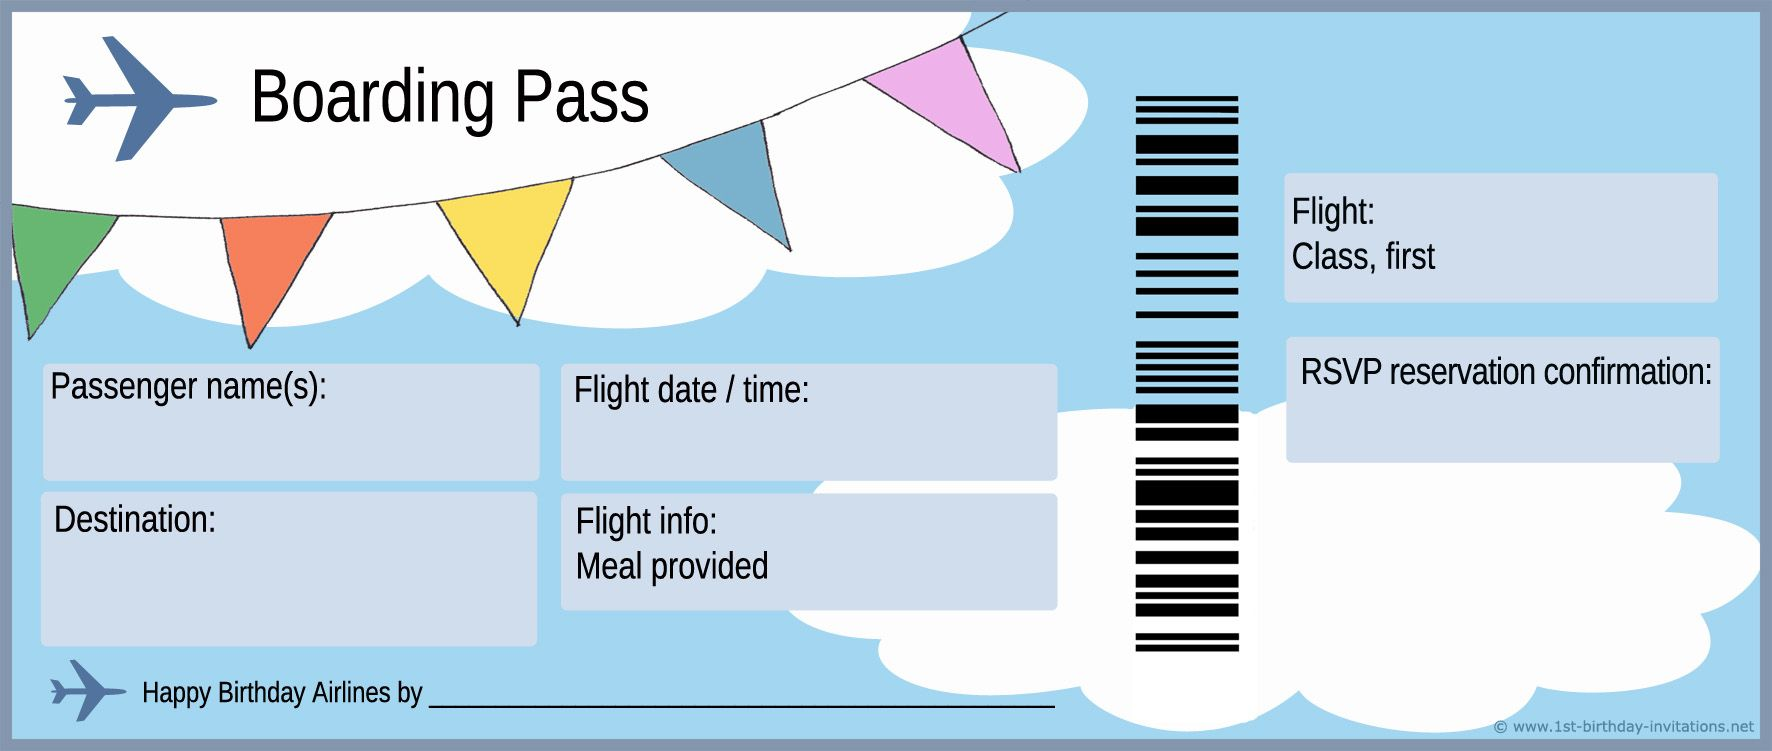 free boarding pass template - Google Search | Homeschool: About ...